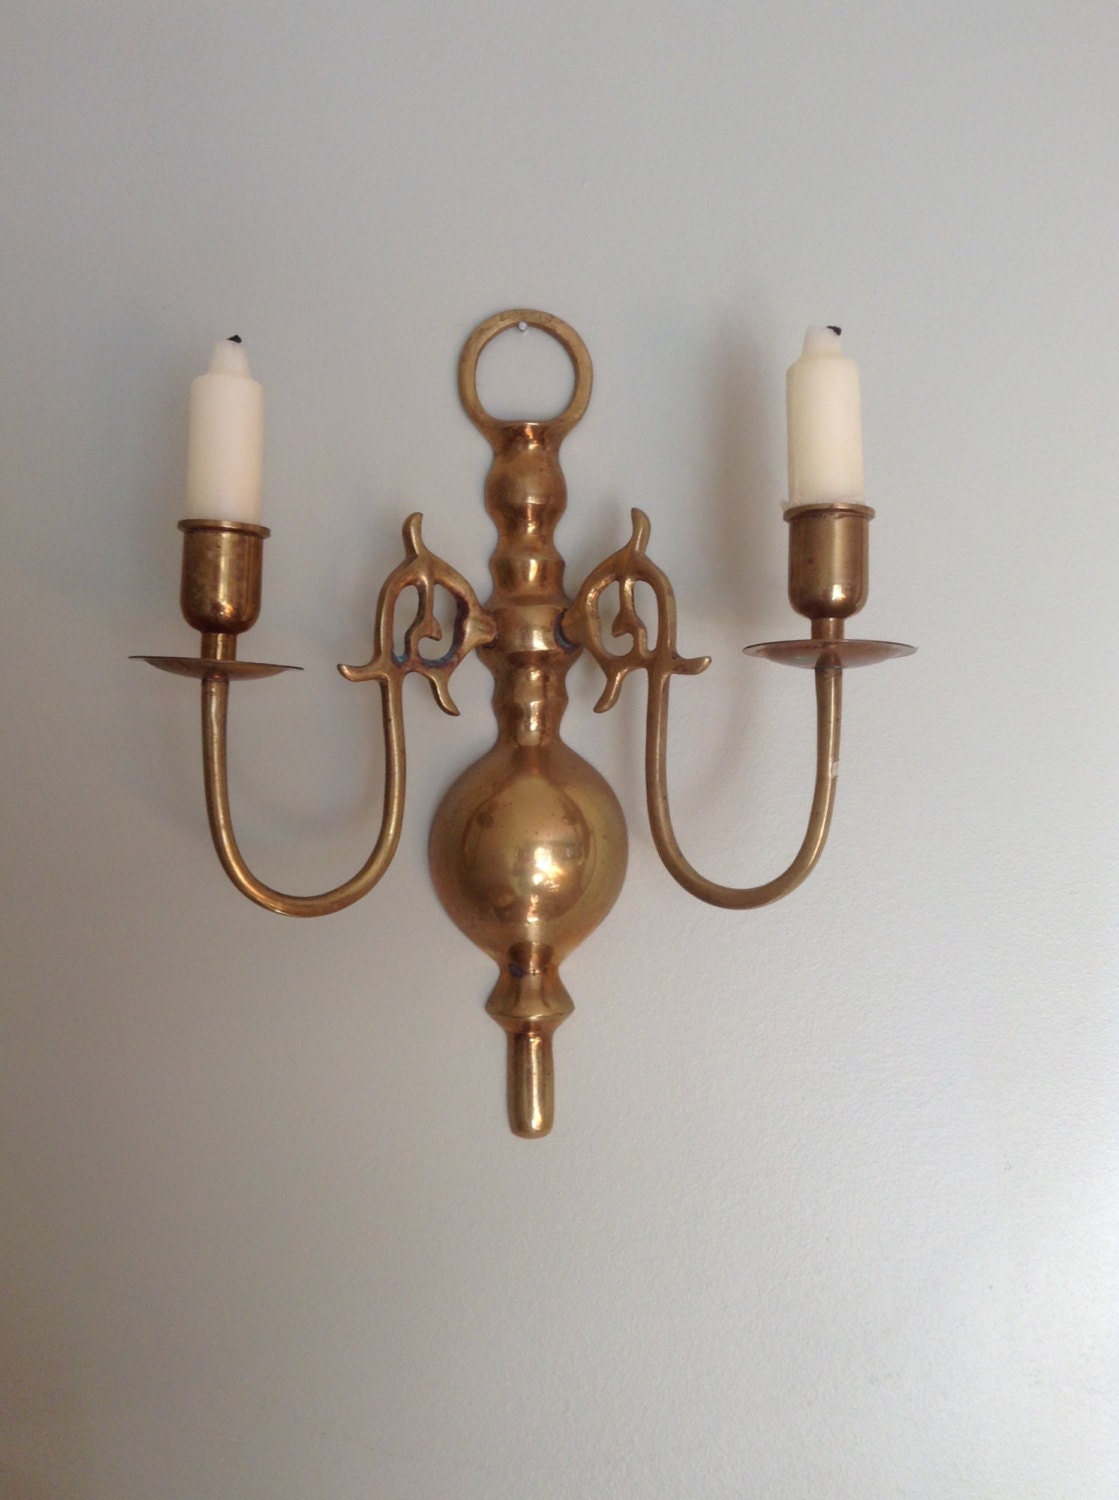 Brass Candle Holder Wall Mount Brass Candle Holder Scone